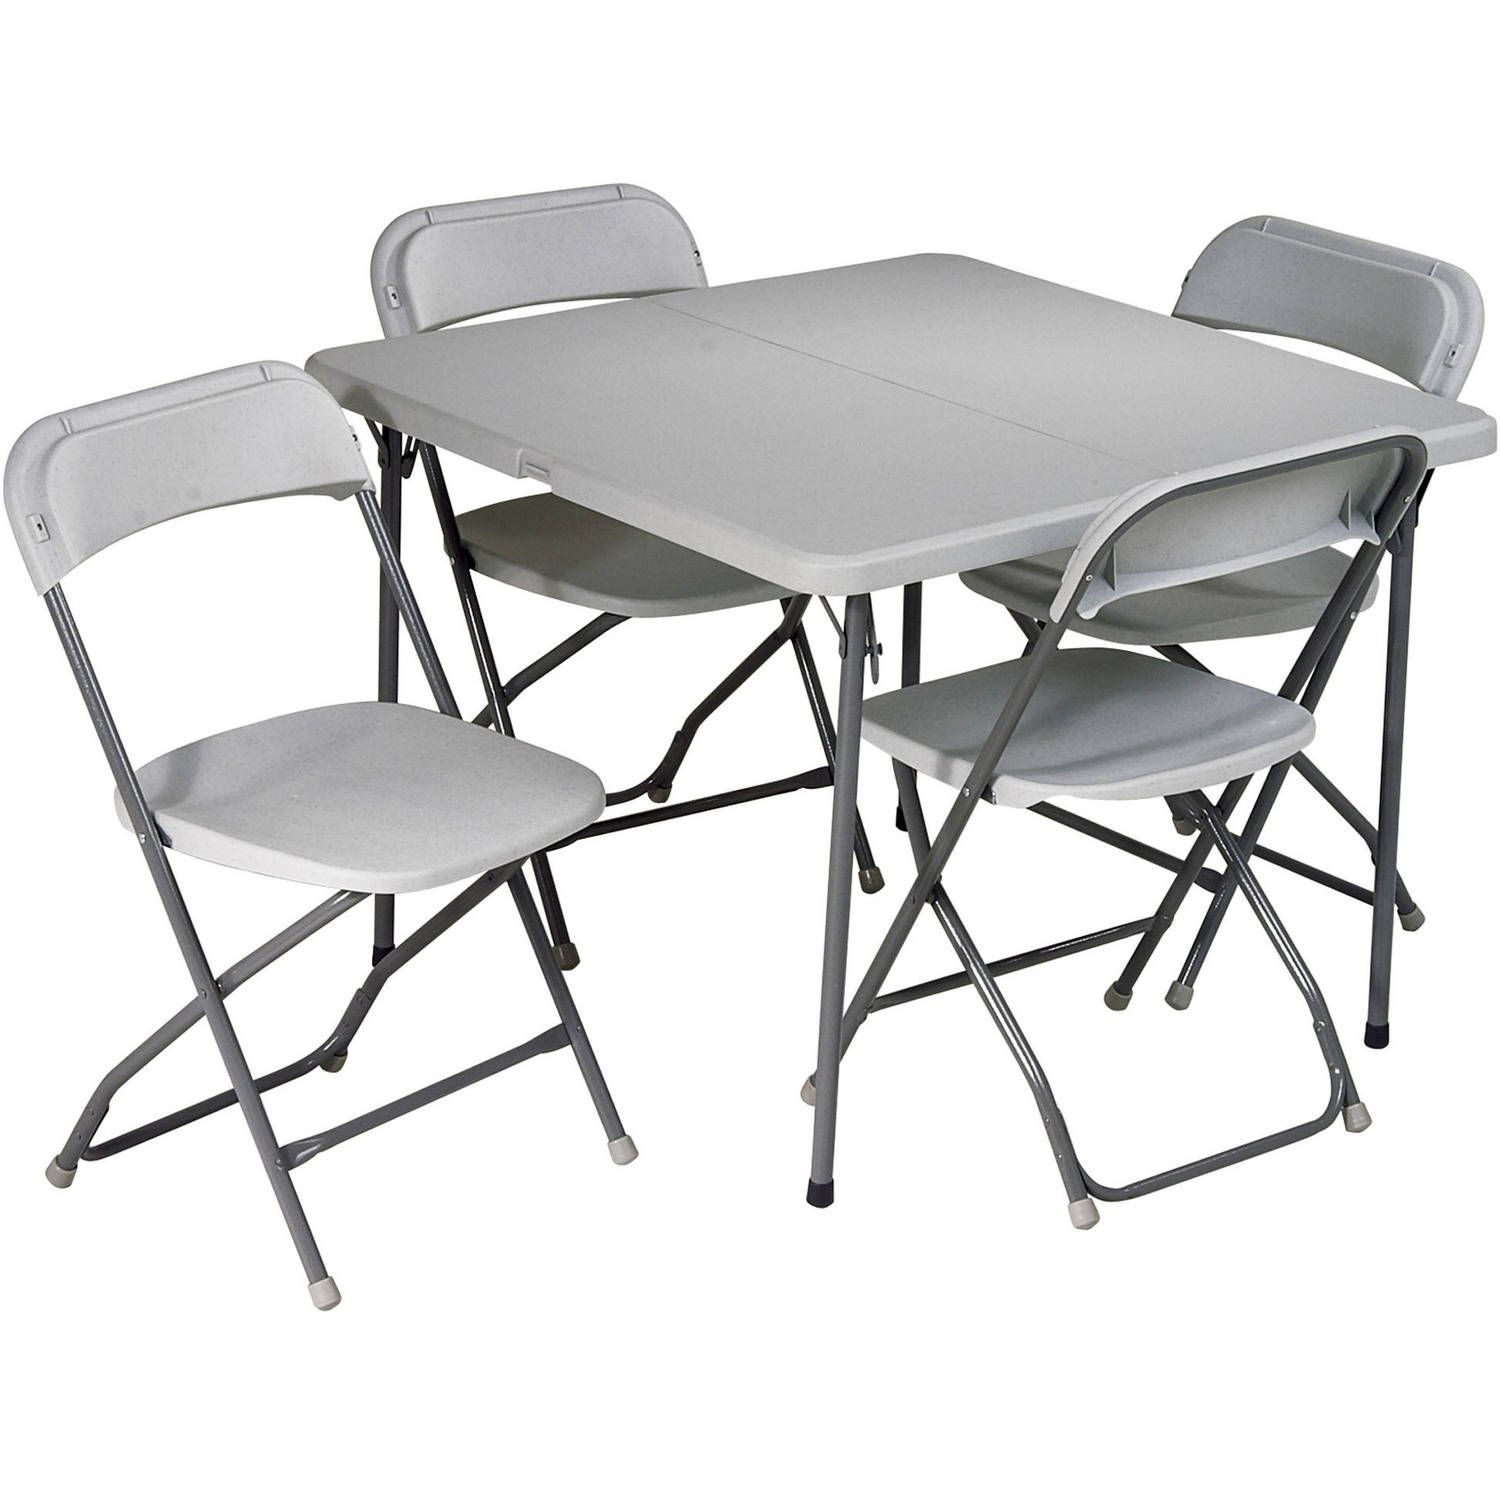 How To Buy A Folding Table And Chairs Set Designalls Folding Table Outdoor Folding Table Table And Chair Sets